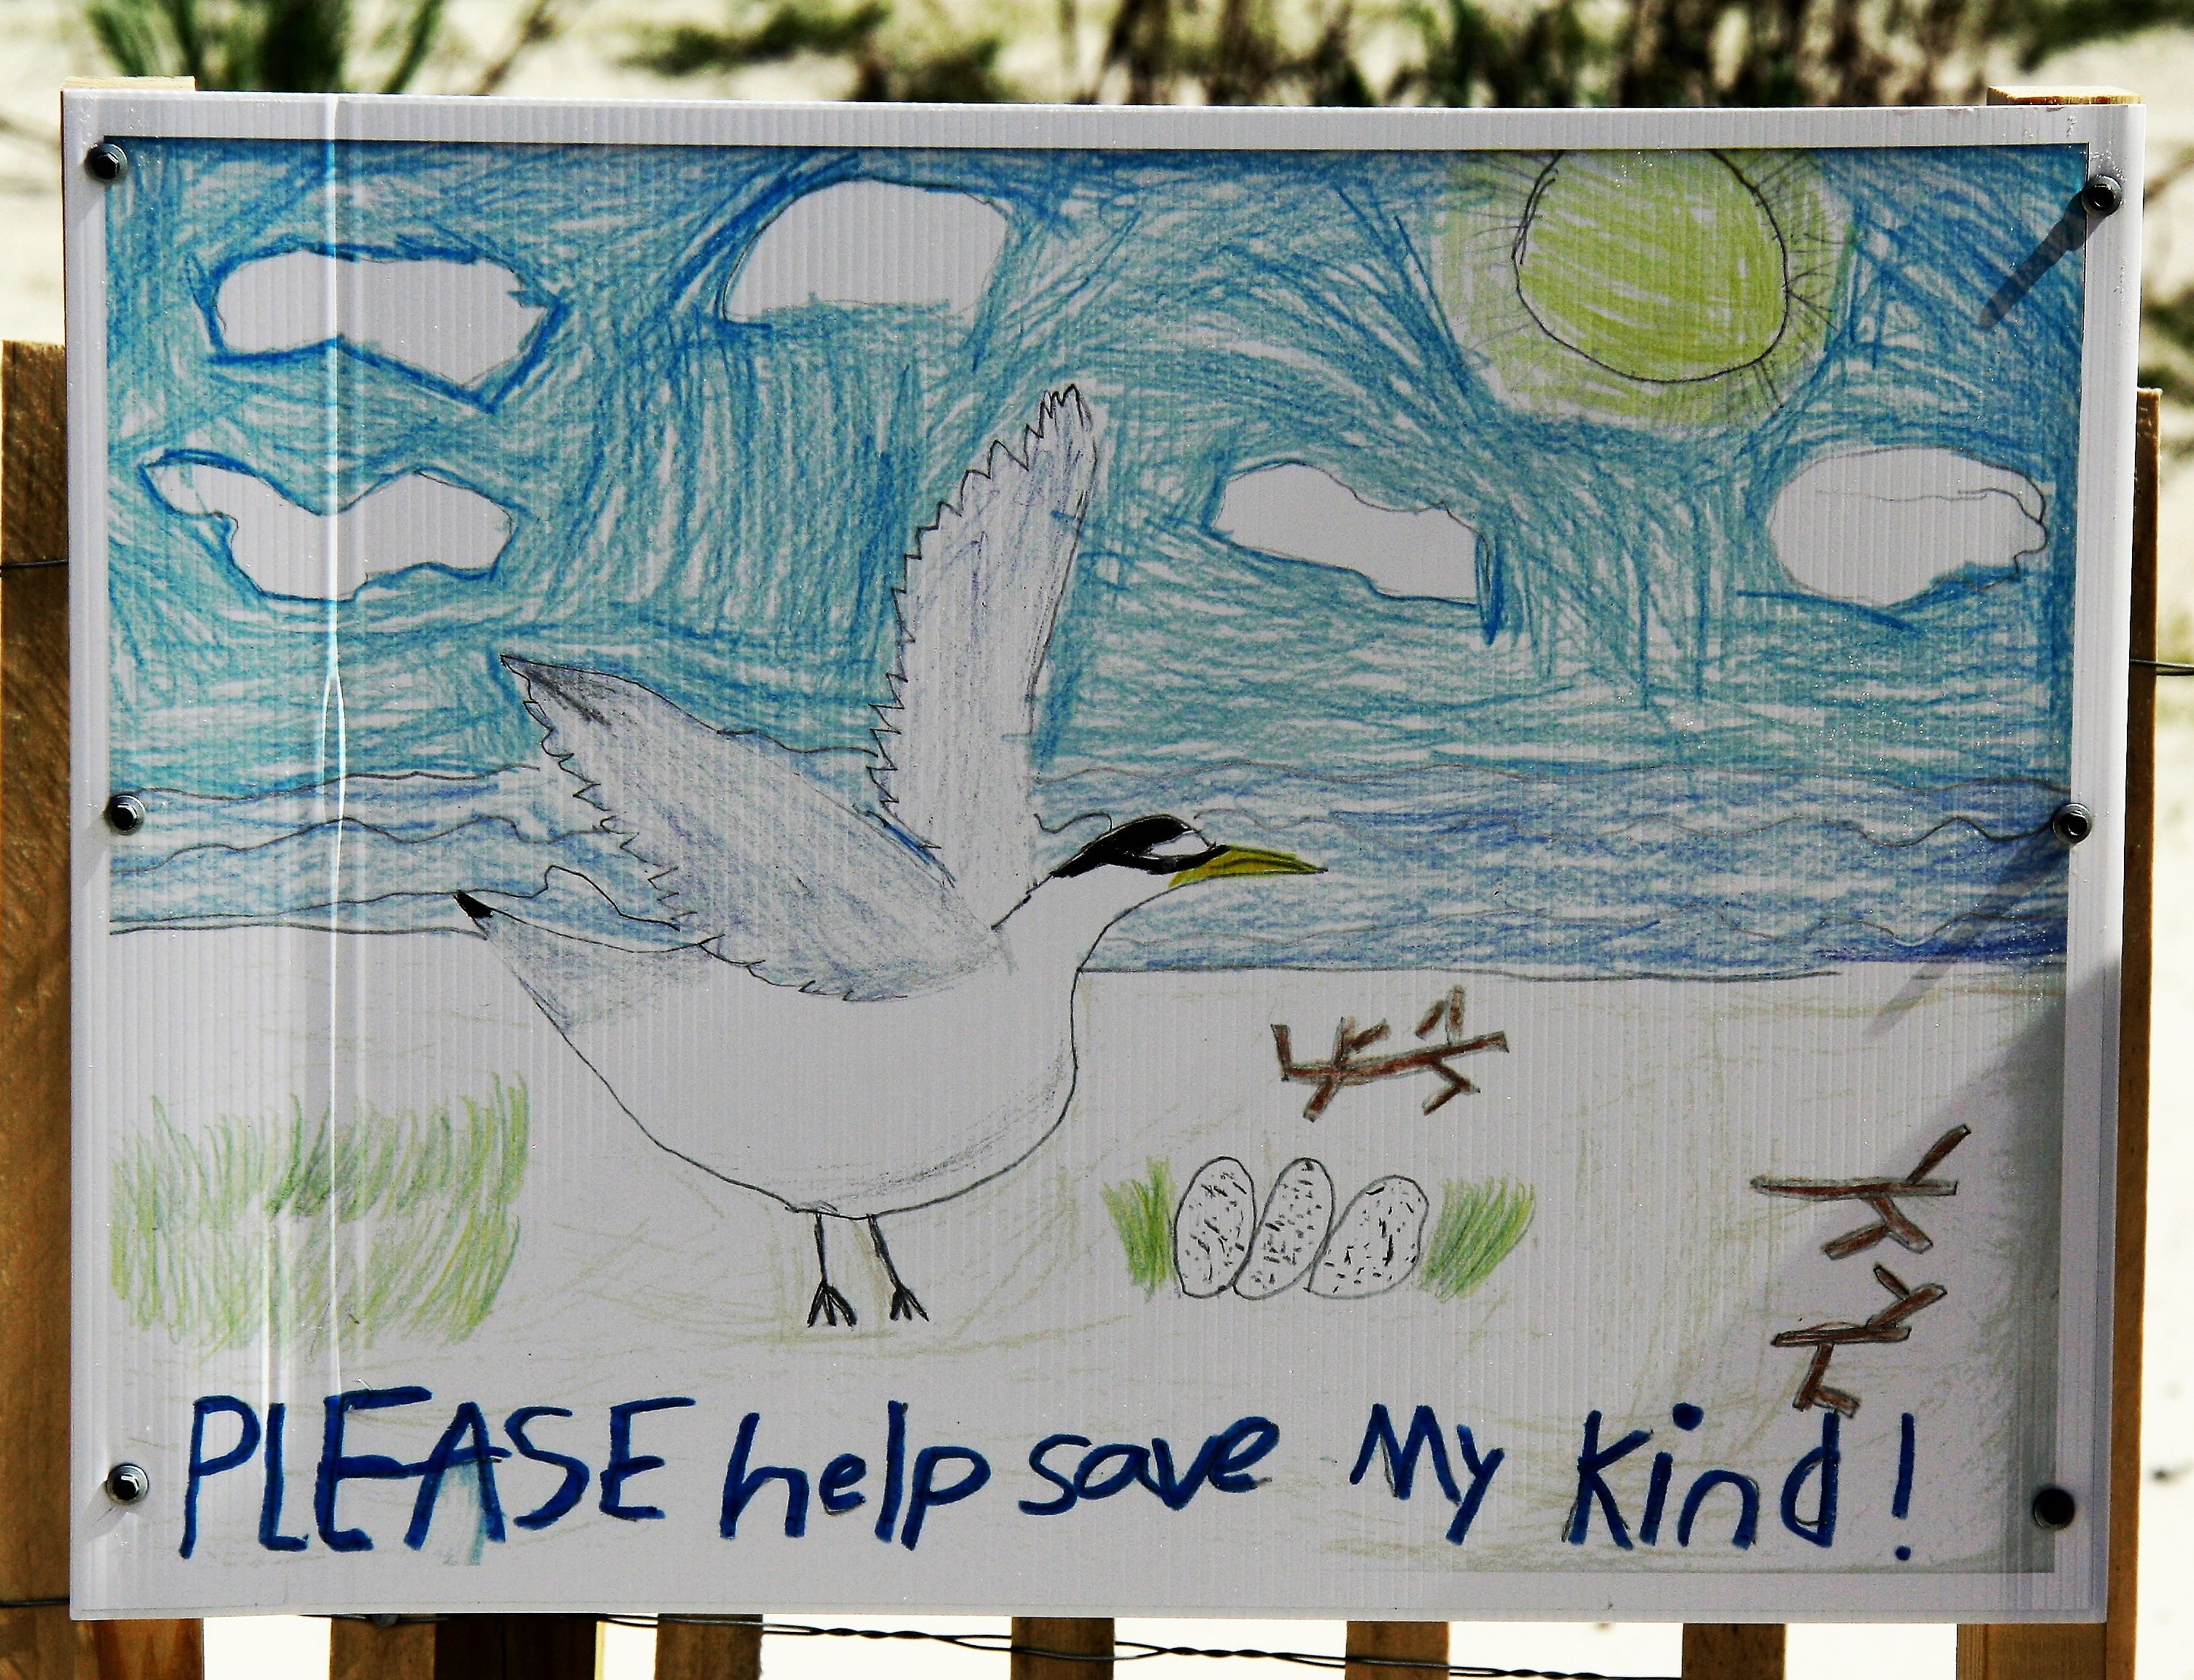 Audubon works with kids in local schools to create signs that alert beachgoers when nesting shorebirds are present. Mary Cowan/Audubon Mississippi